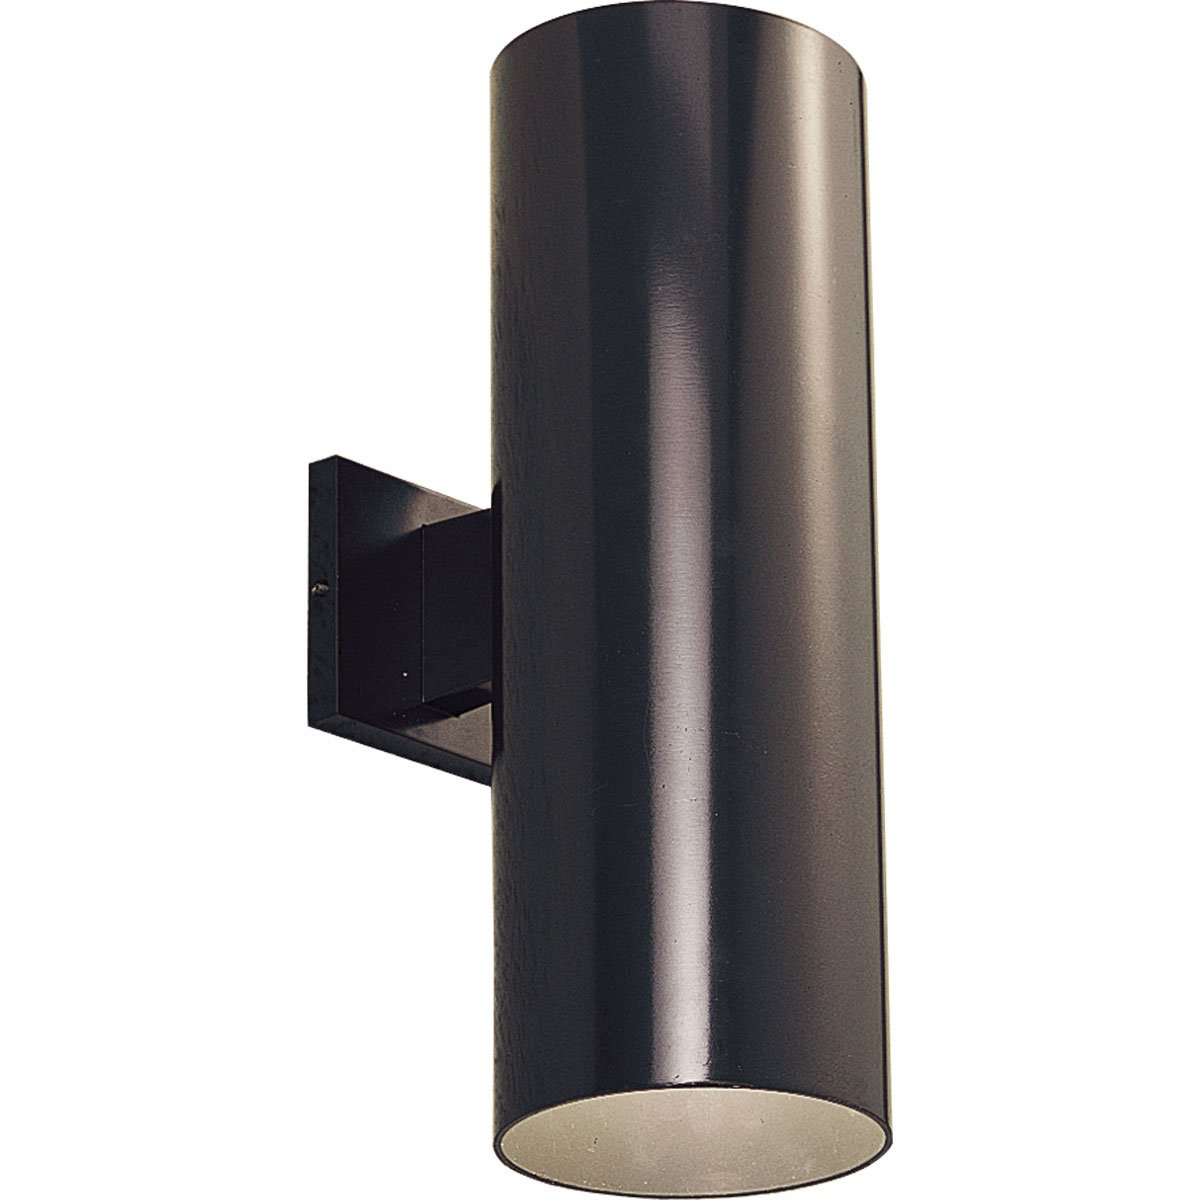 Progress Lighting P5642-20 6-Inch Up/Down Cylinder with Heavy Duty Aluminum Construction and Die Cast Wall Bracket, Antique Bronze by Progress Lighting